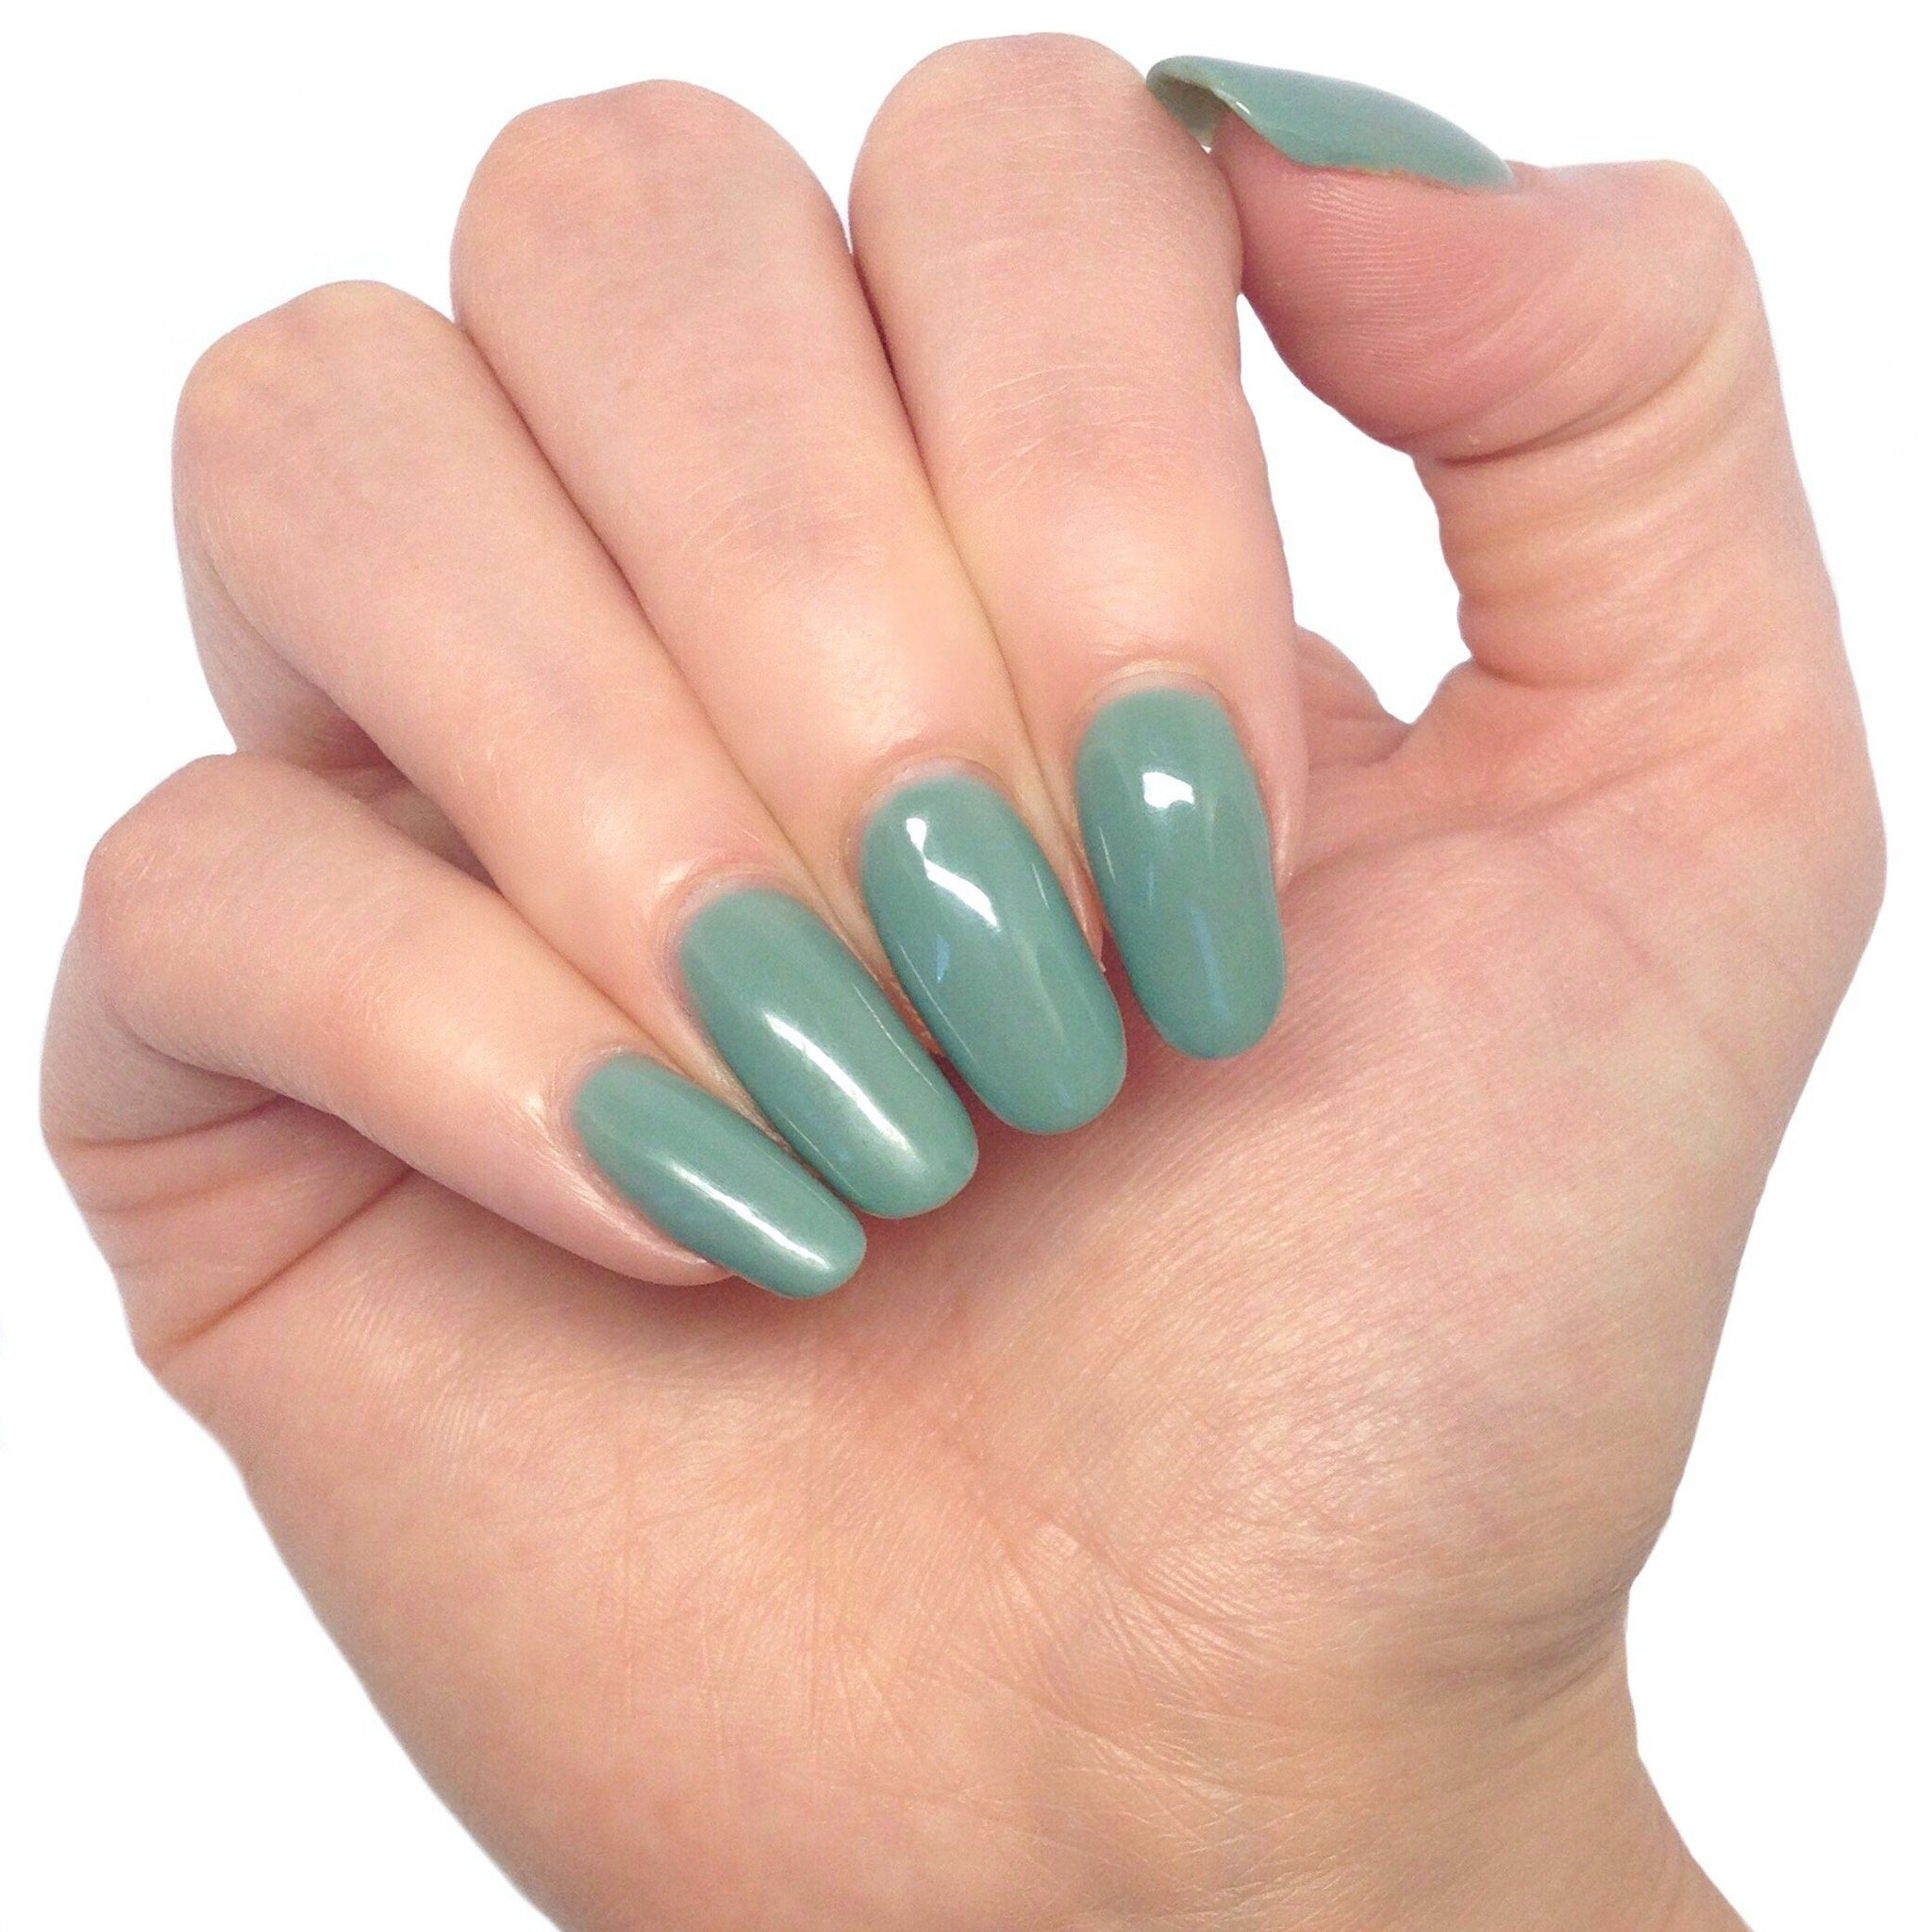 Bluesky 80570 SAGE SCARF UV/LED Soak Off Gel Nail Polish 10ml Free P&P! - Bluesky Nail Gel Polish